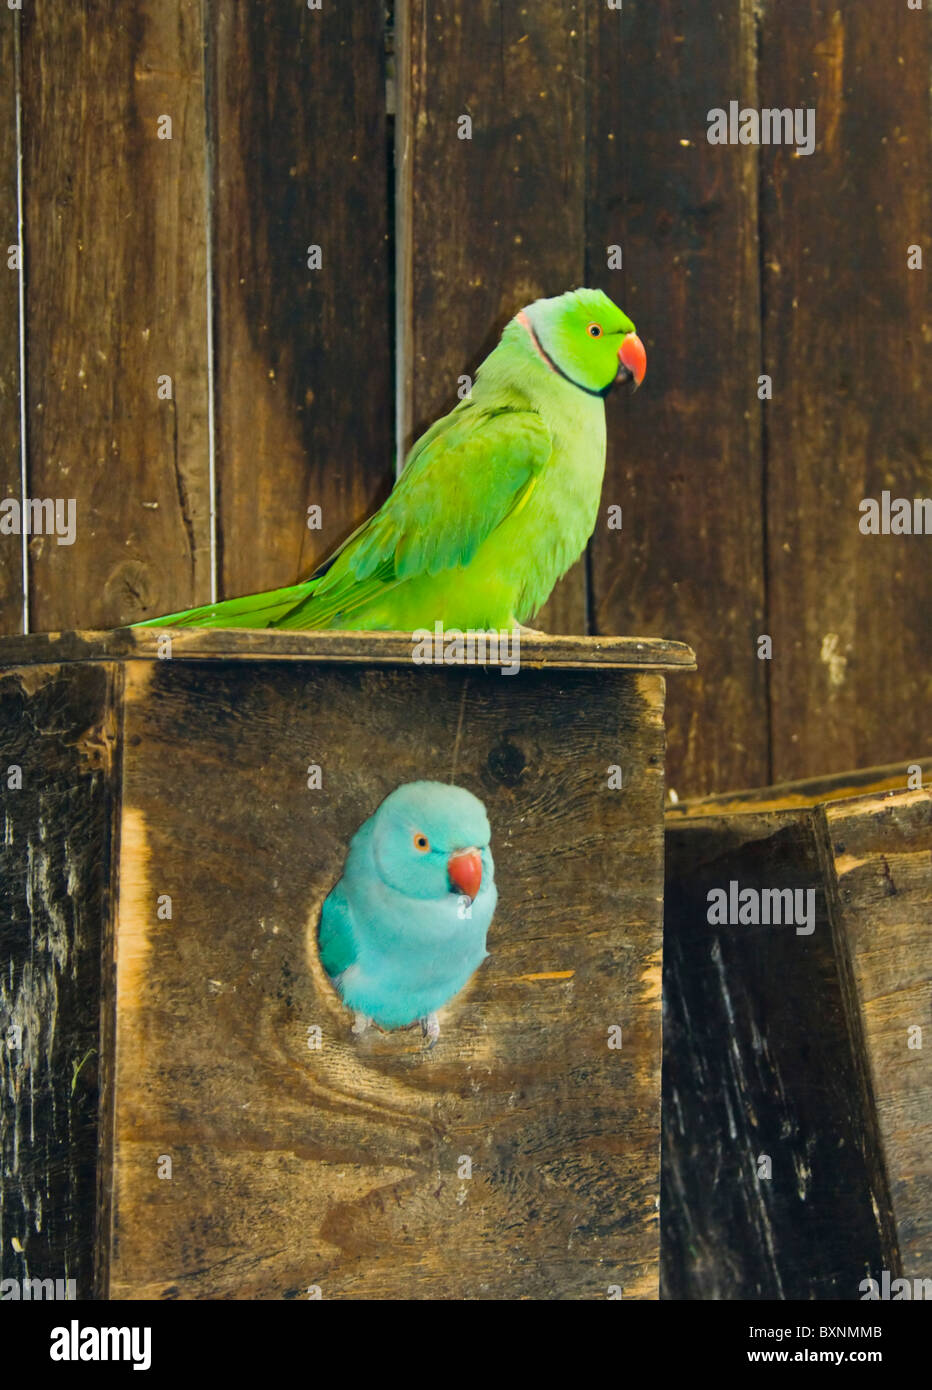 Indian Ringneck Parakeet Psittacula krameri manillensis World of Birds Cape Town South Africa Captive - Stock Image